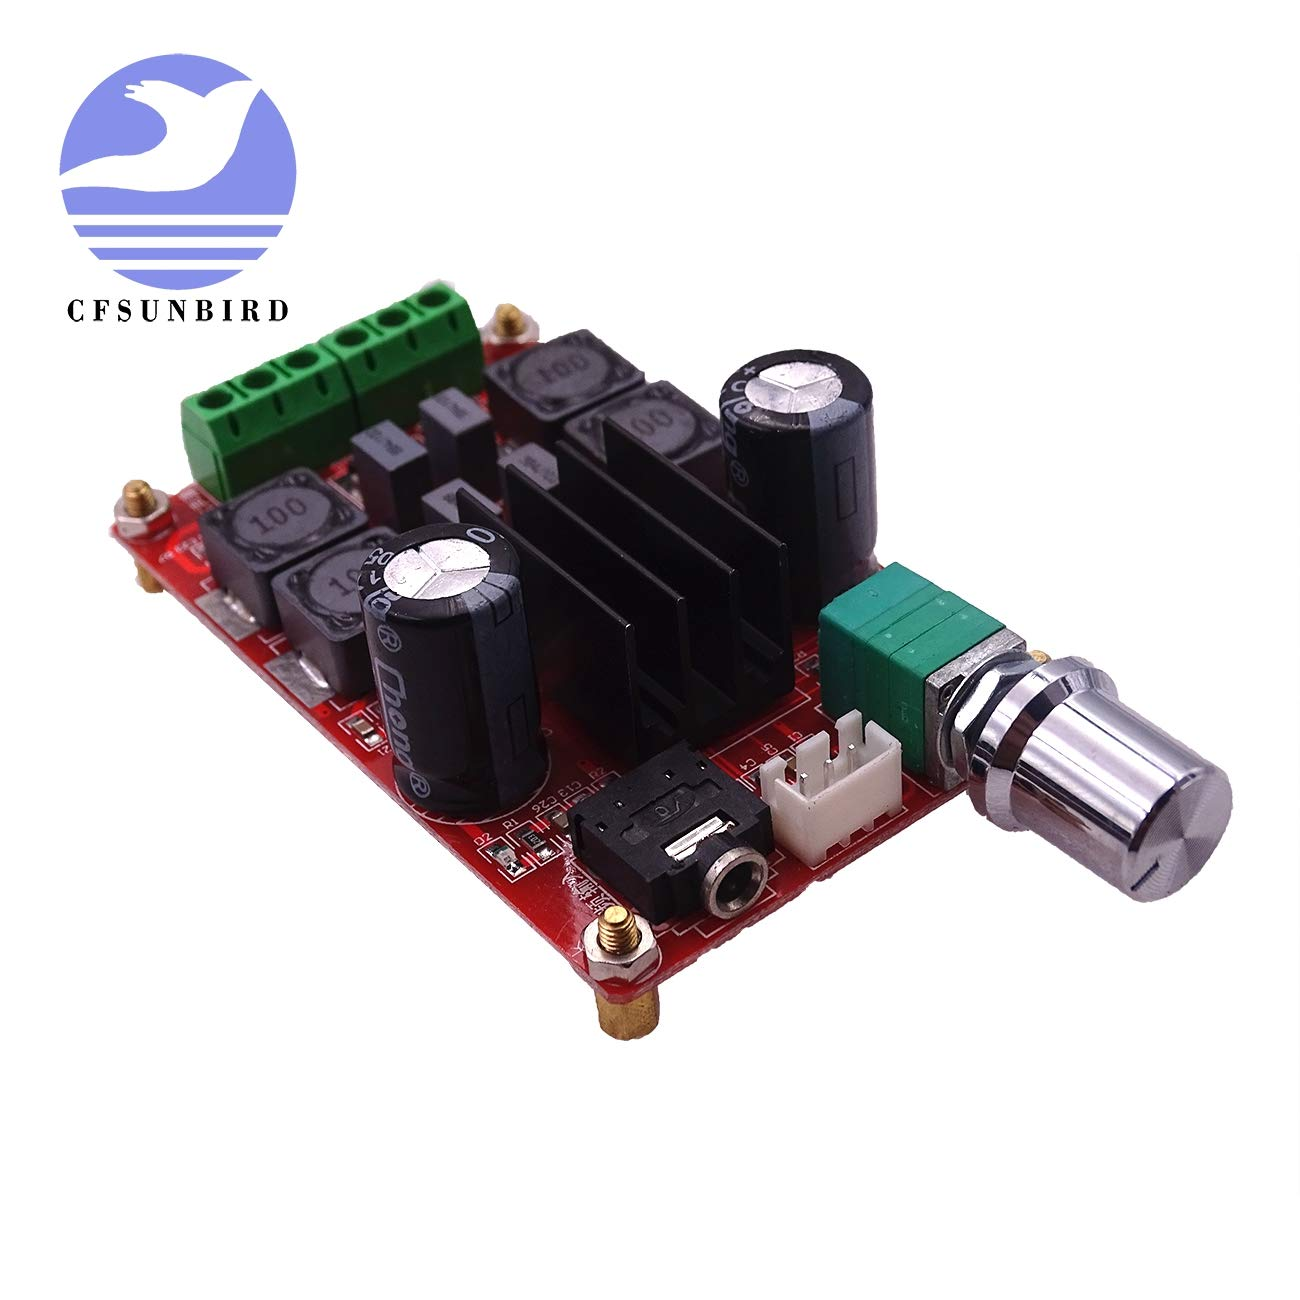 2x50W Digital Power Amplifier Board 5V to 24V Dual Channel Stereo AMP TPA3116D2 New Arrival